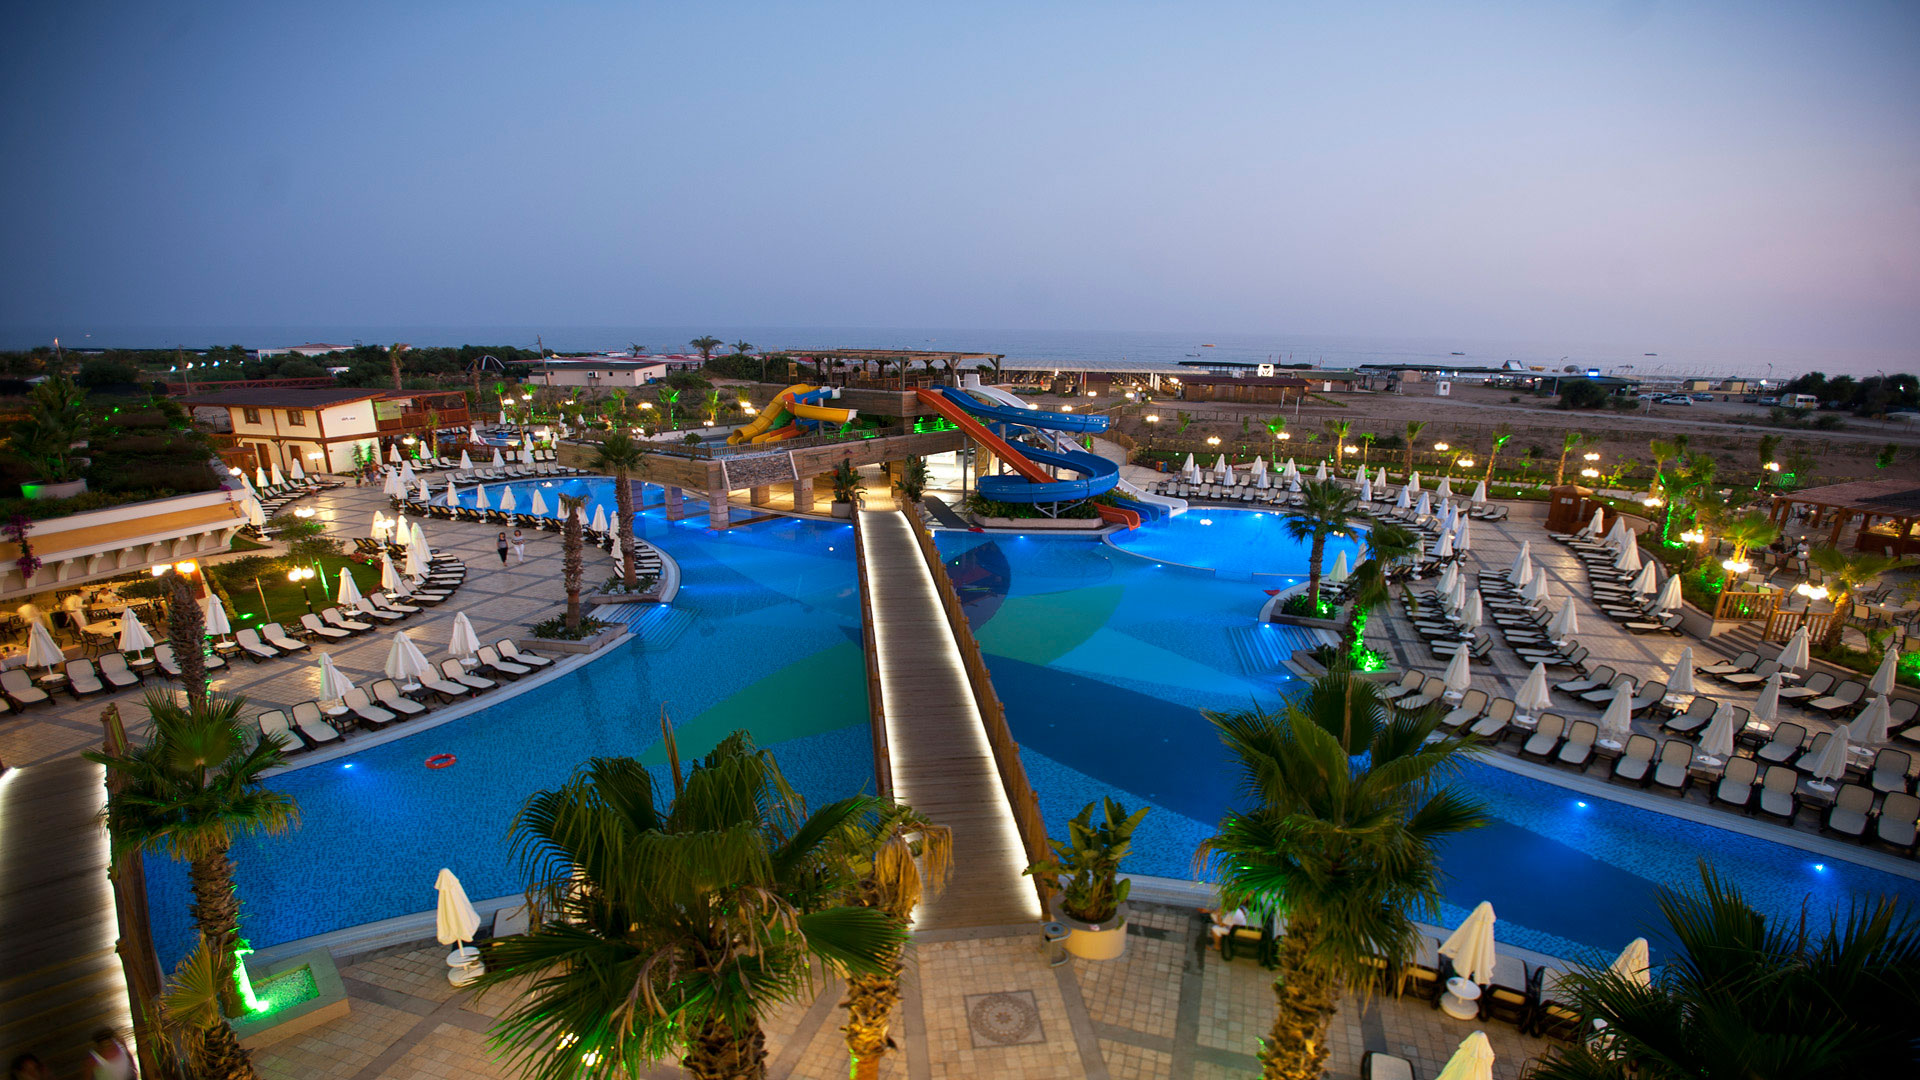 CRYSTAL PALACE LUXURY RESORT & SPA HOTEL